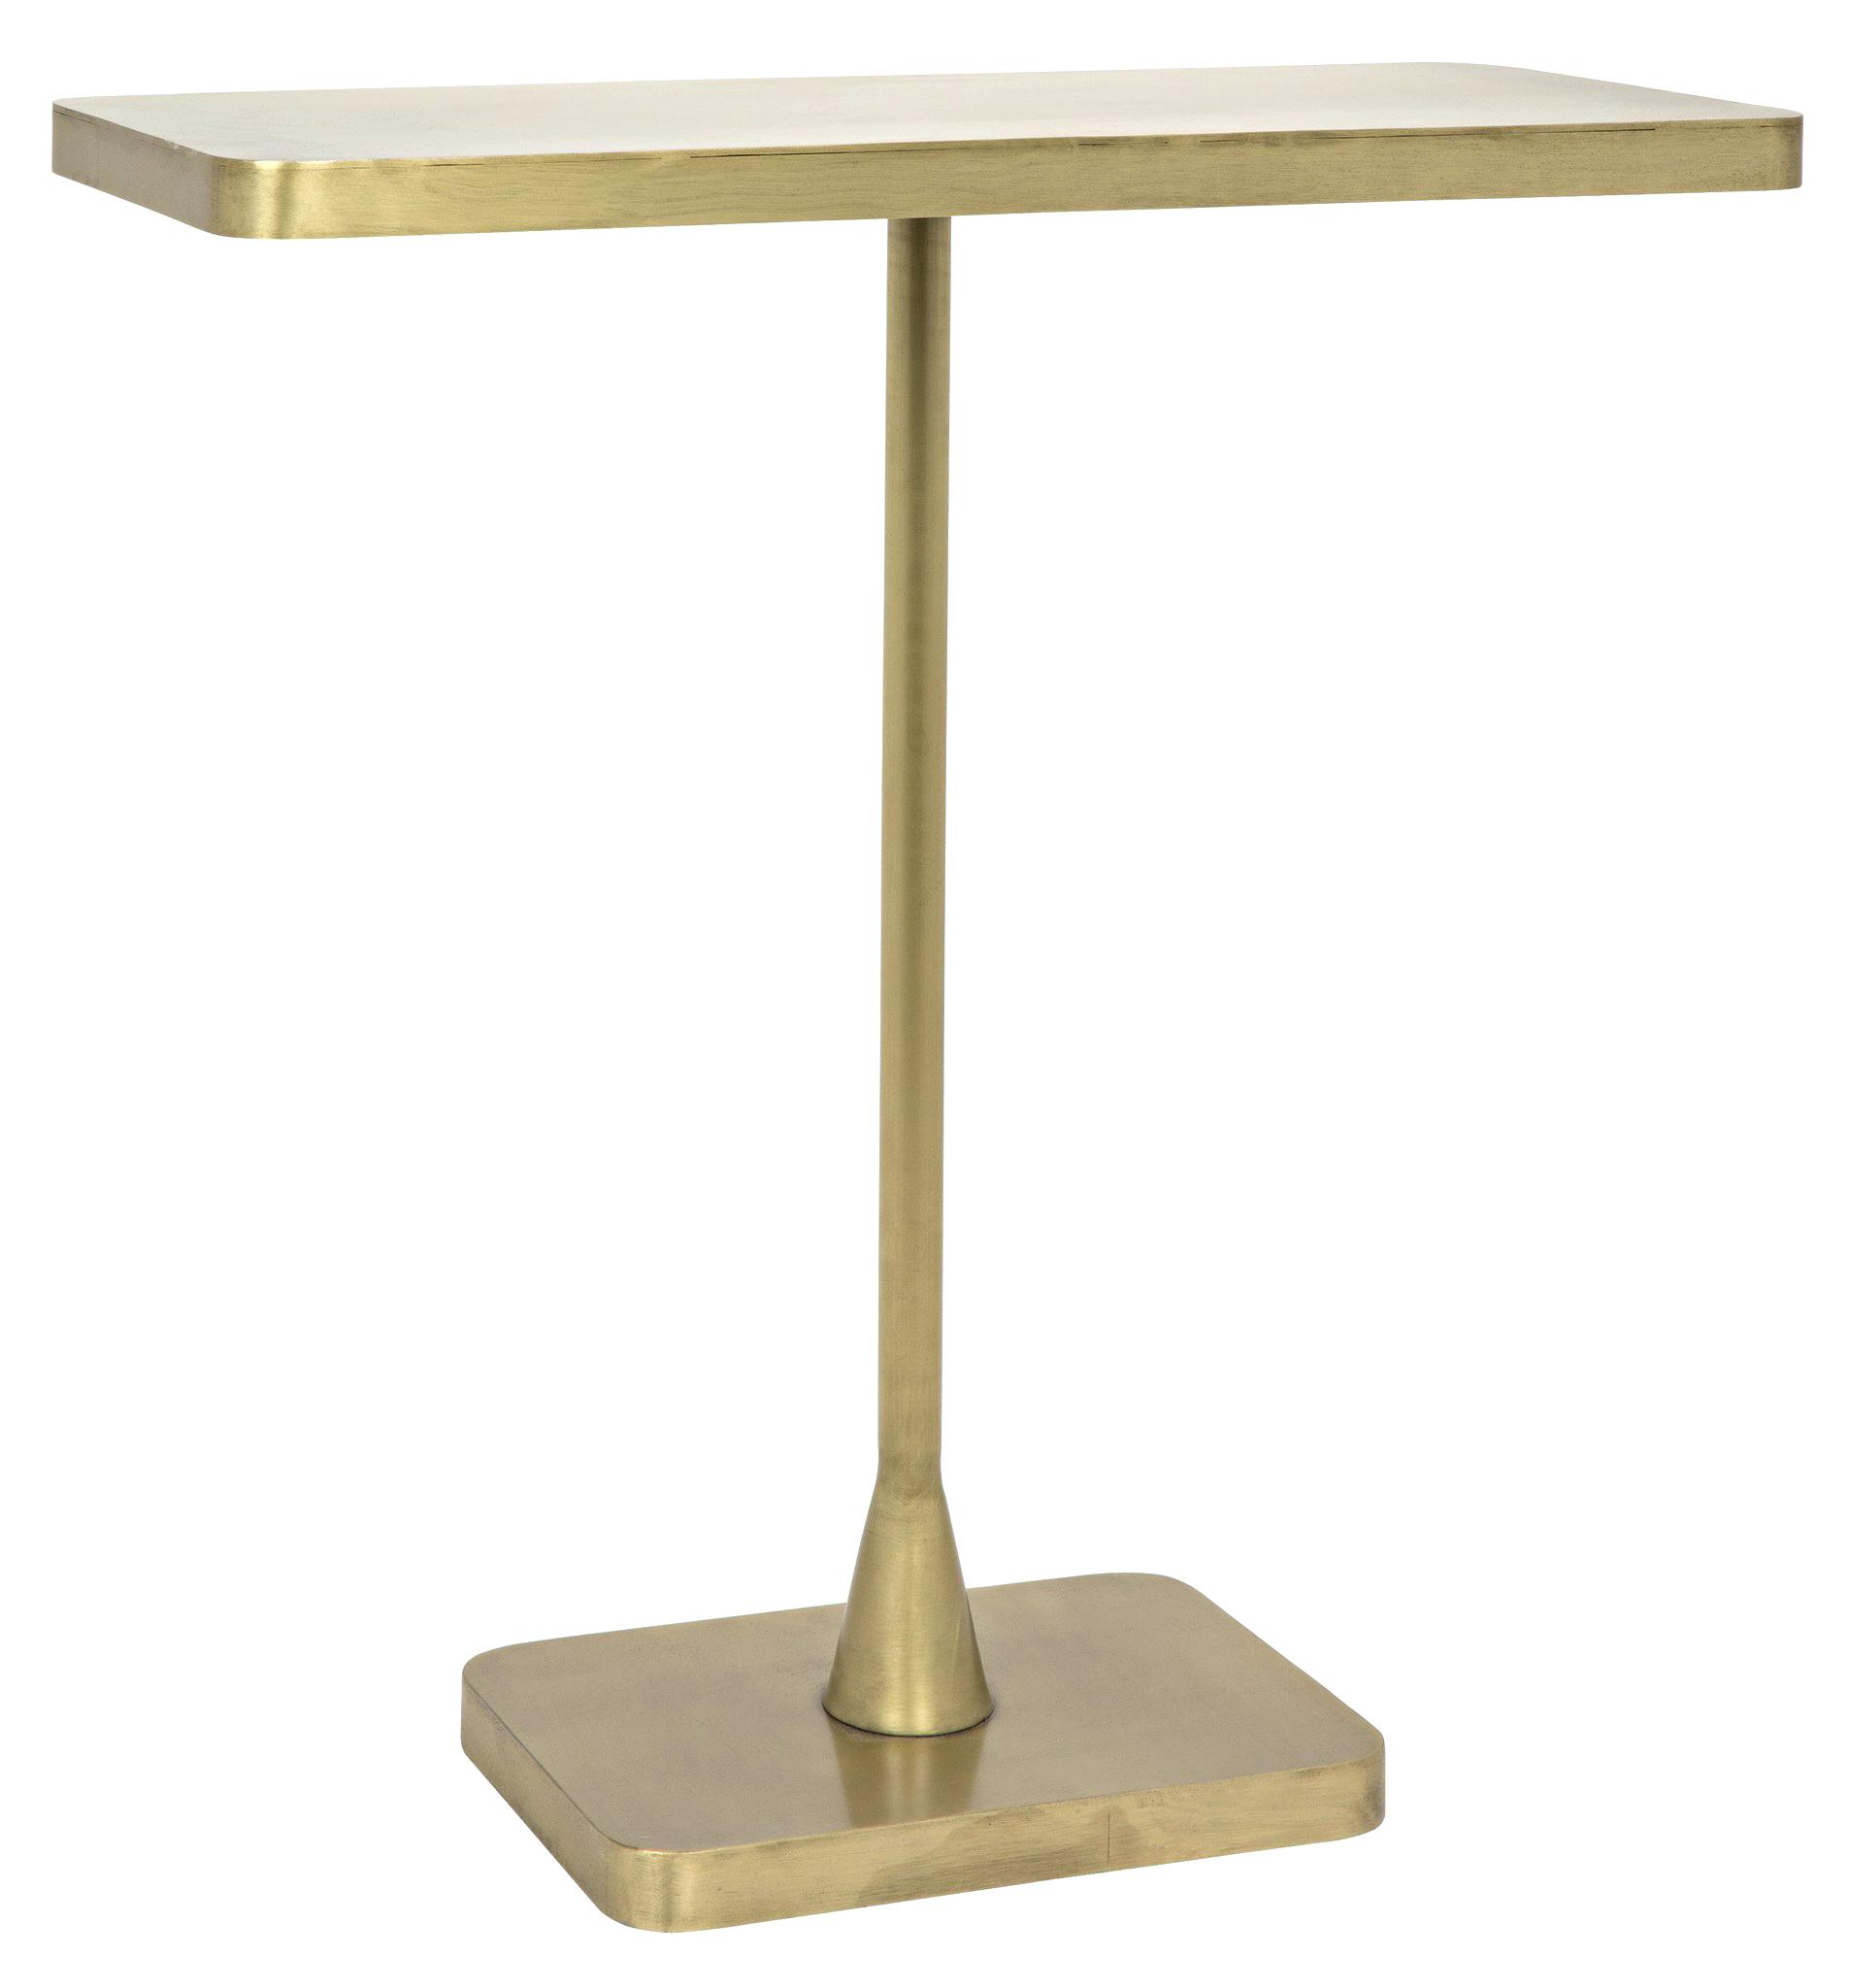 brass accent table antique fitmitagnes info side target threshold tan battery house lights steel end furniture nate berkus rug black metal lamp small mahogany pottery barn outdoor